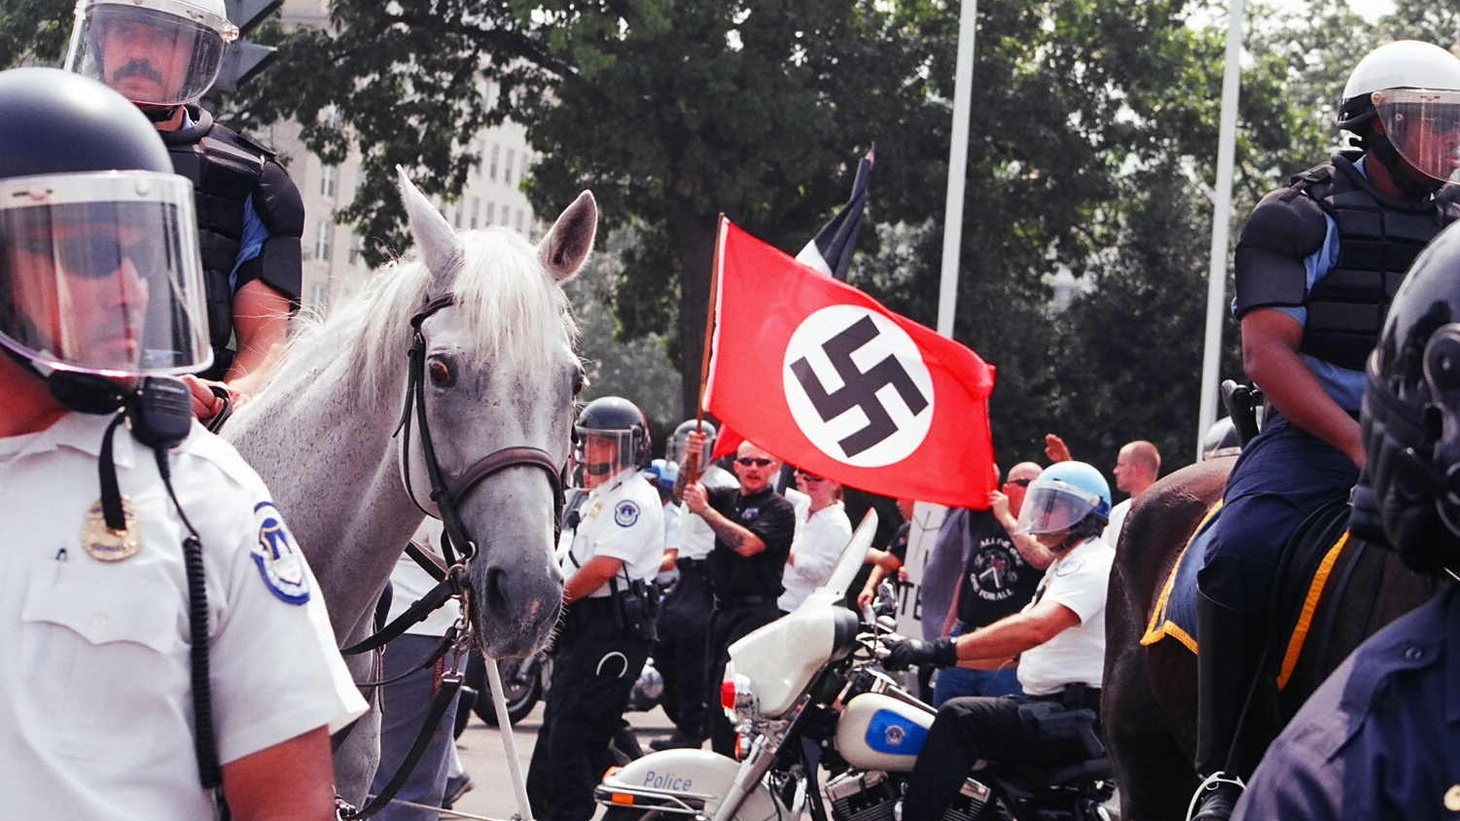 National Alliance Neo-Nazi rally.